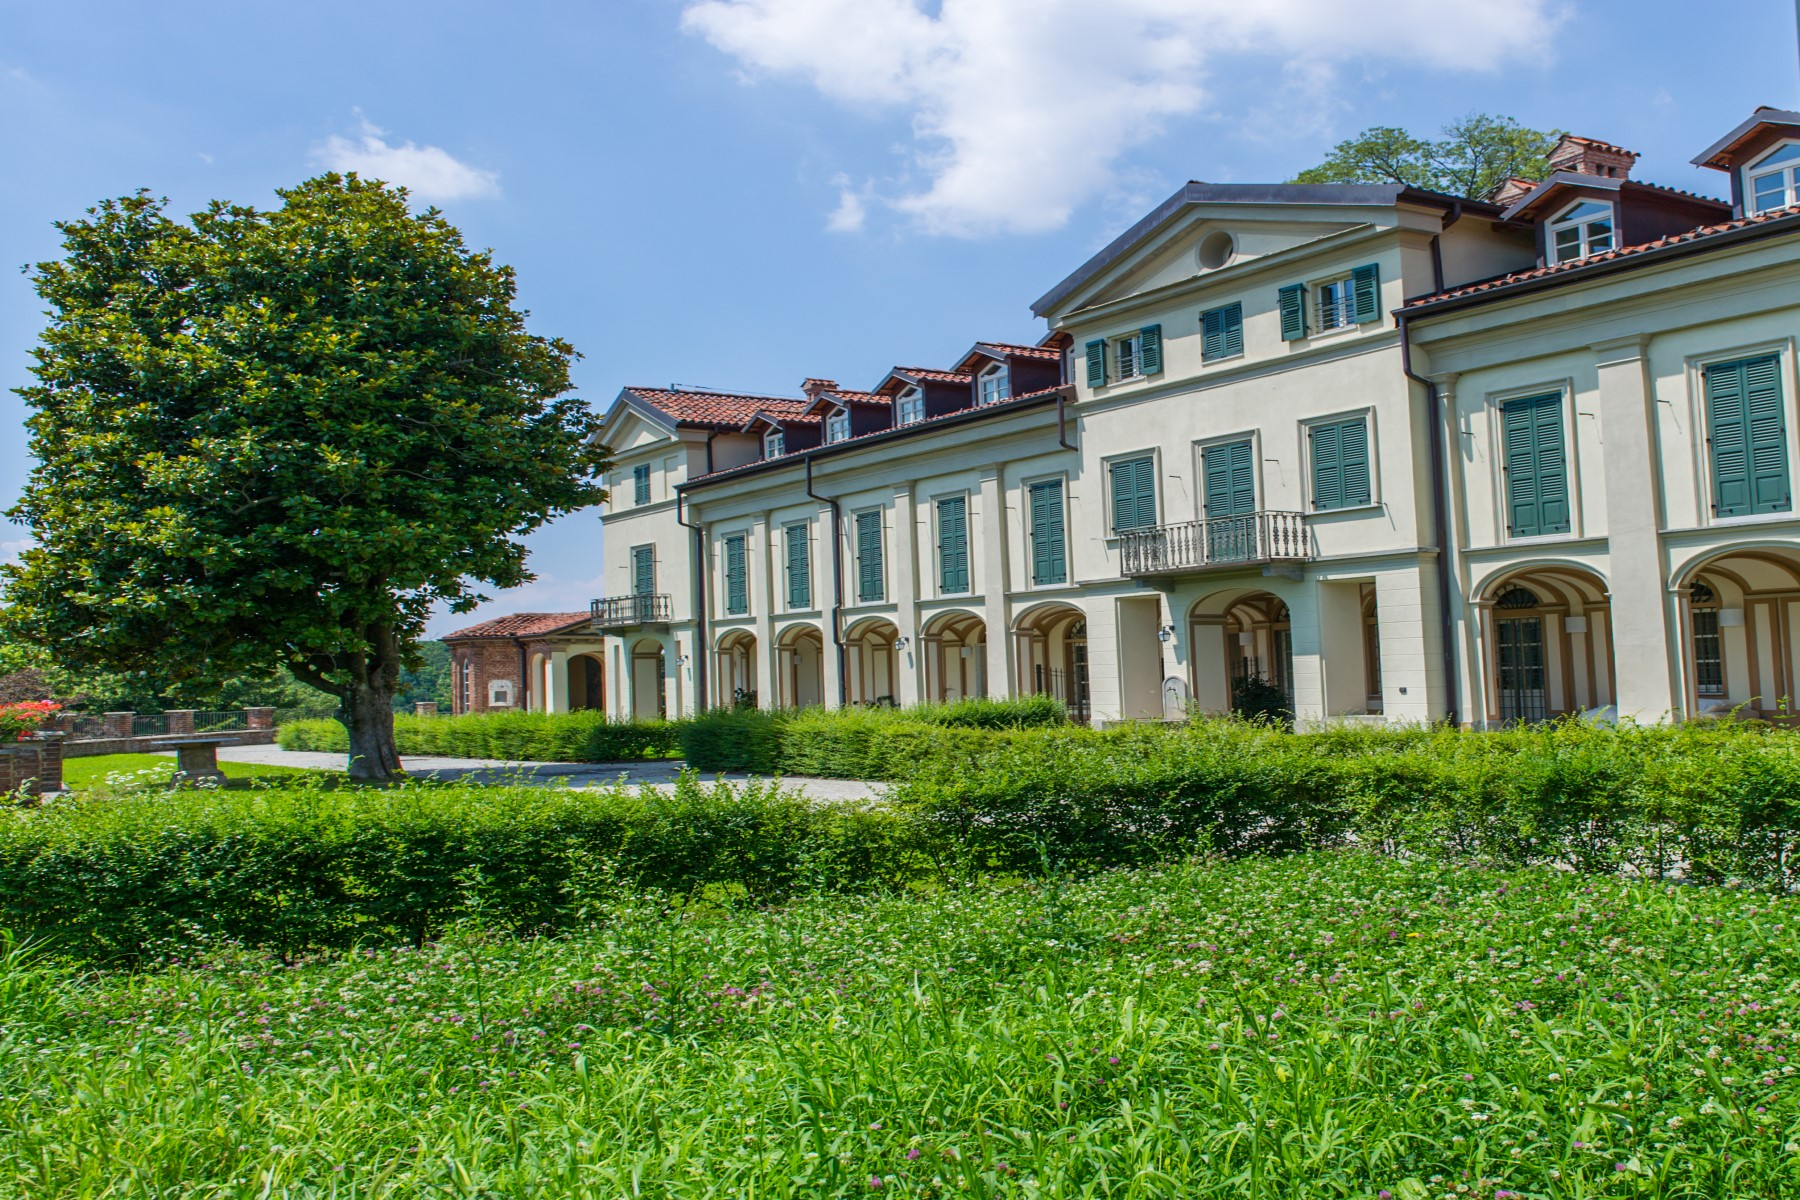 Single Family Home for Sale at Historic villa with incredible view on hills of Turin Strada di Fenestrelle Torino, Turin 10060 Italy